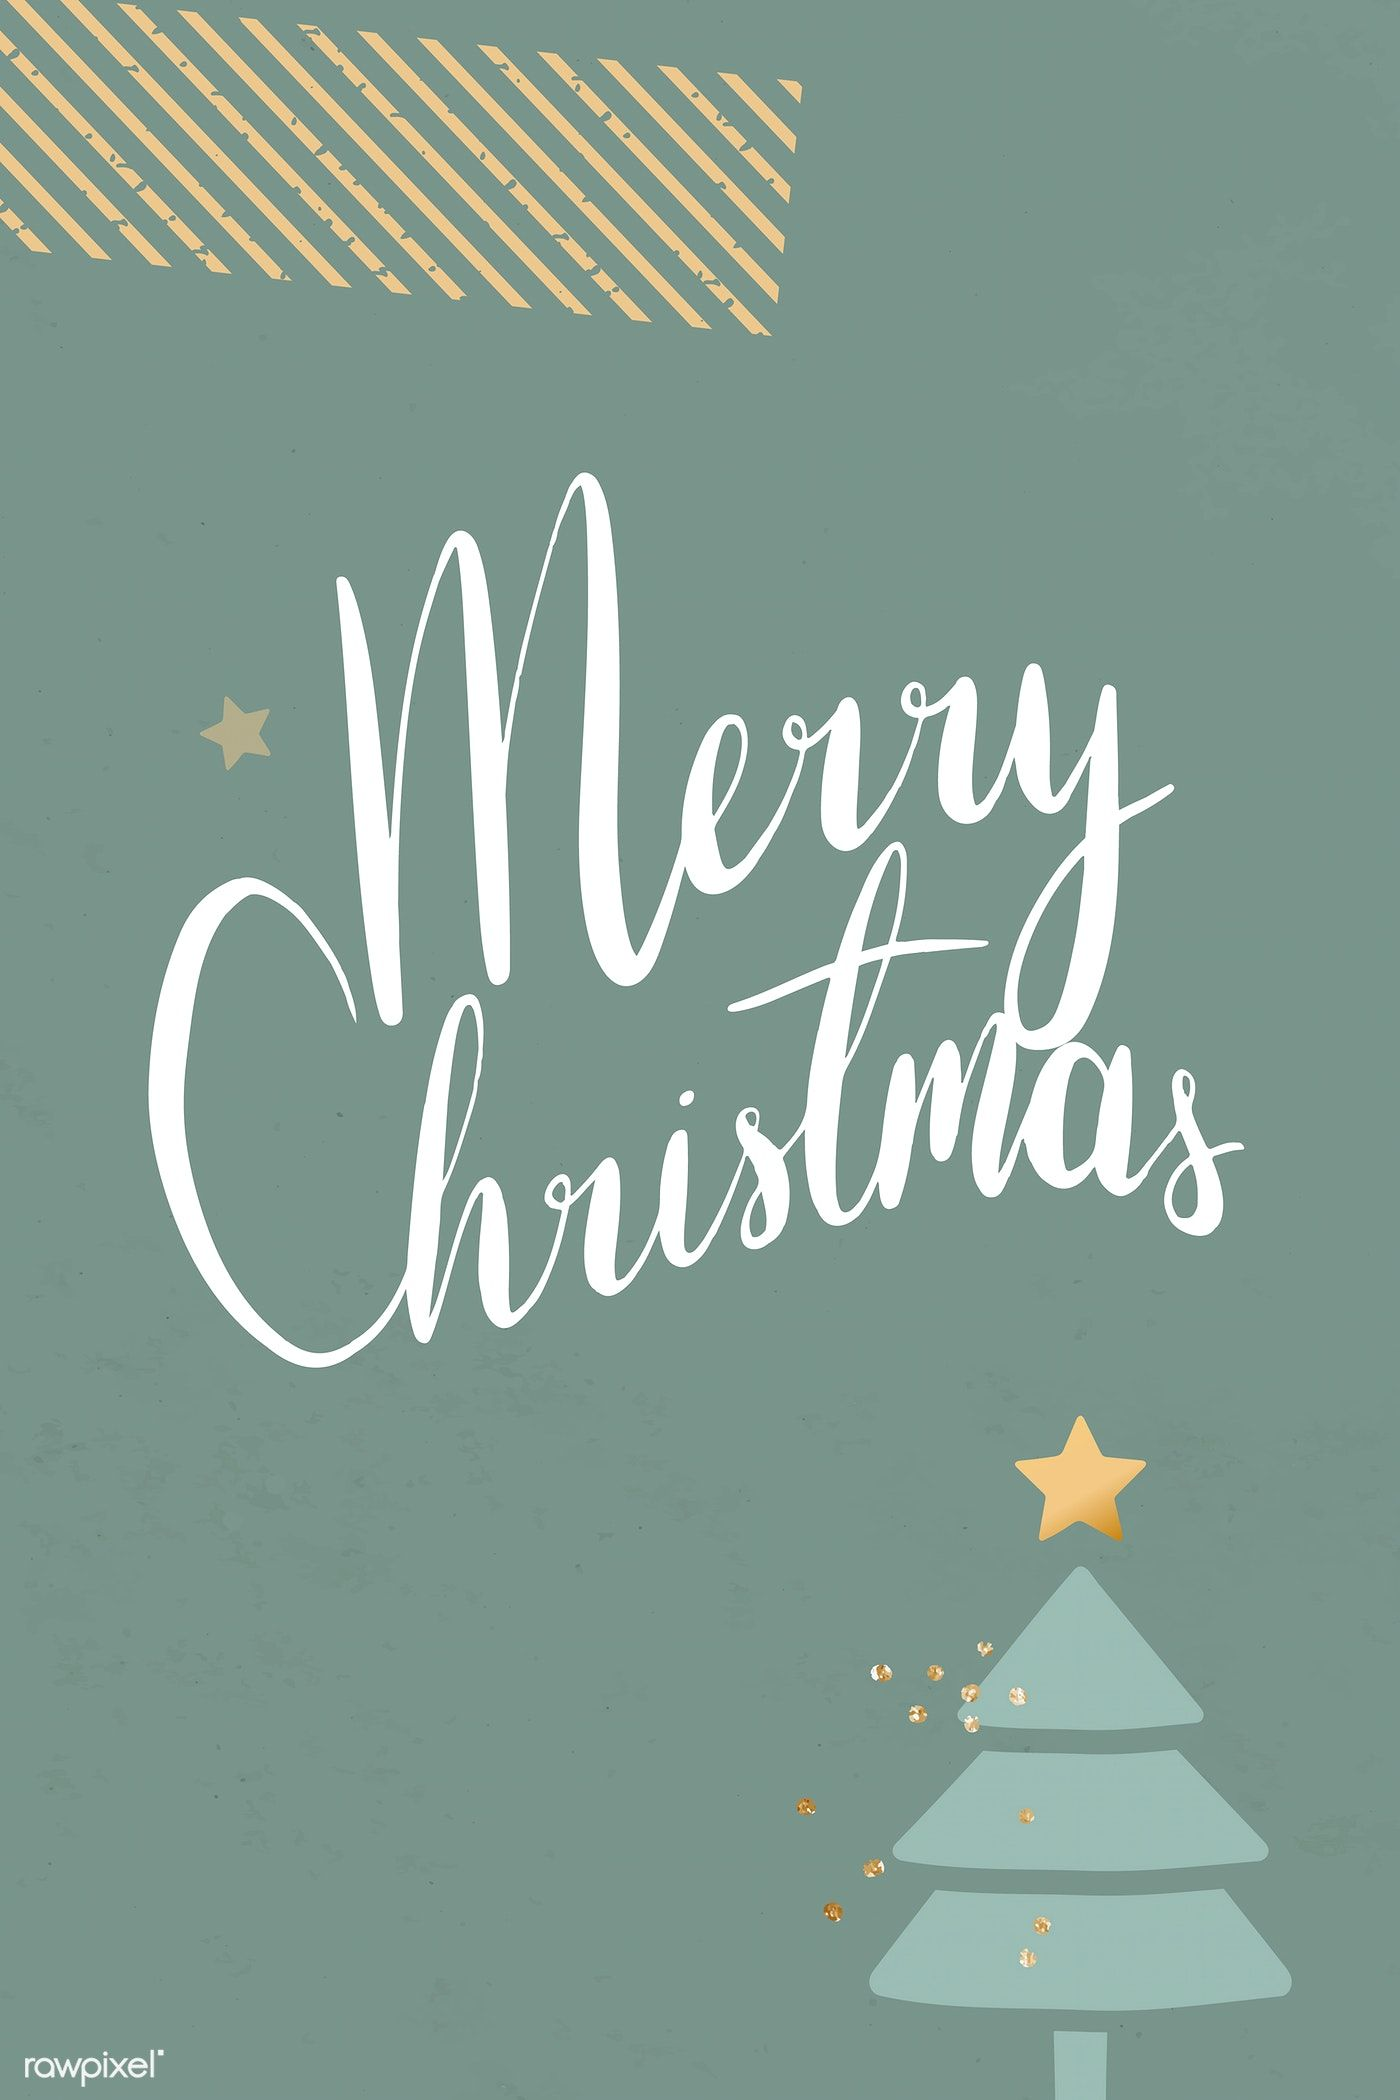 Download premium vector of festive merry christmas card